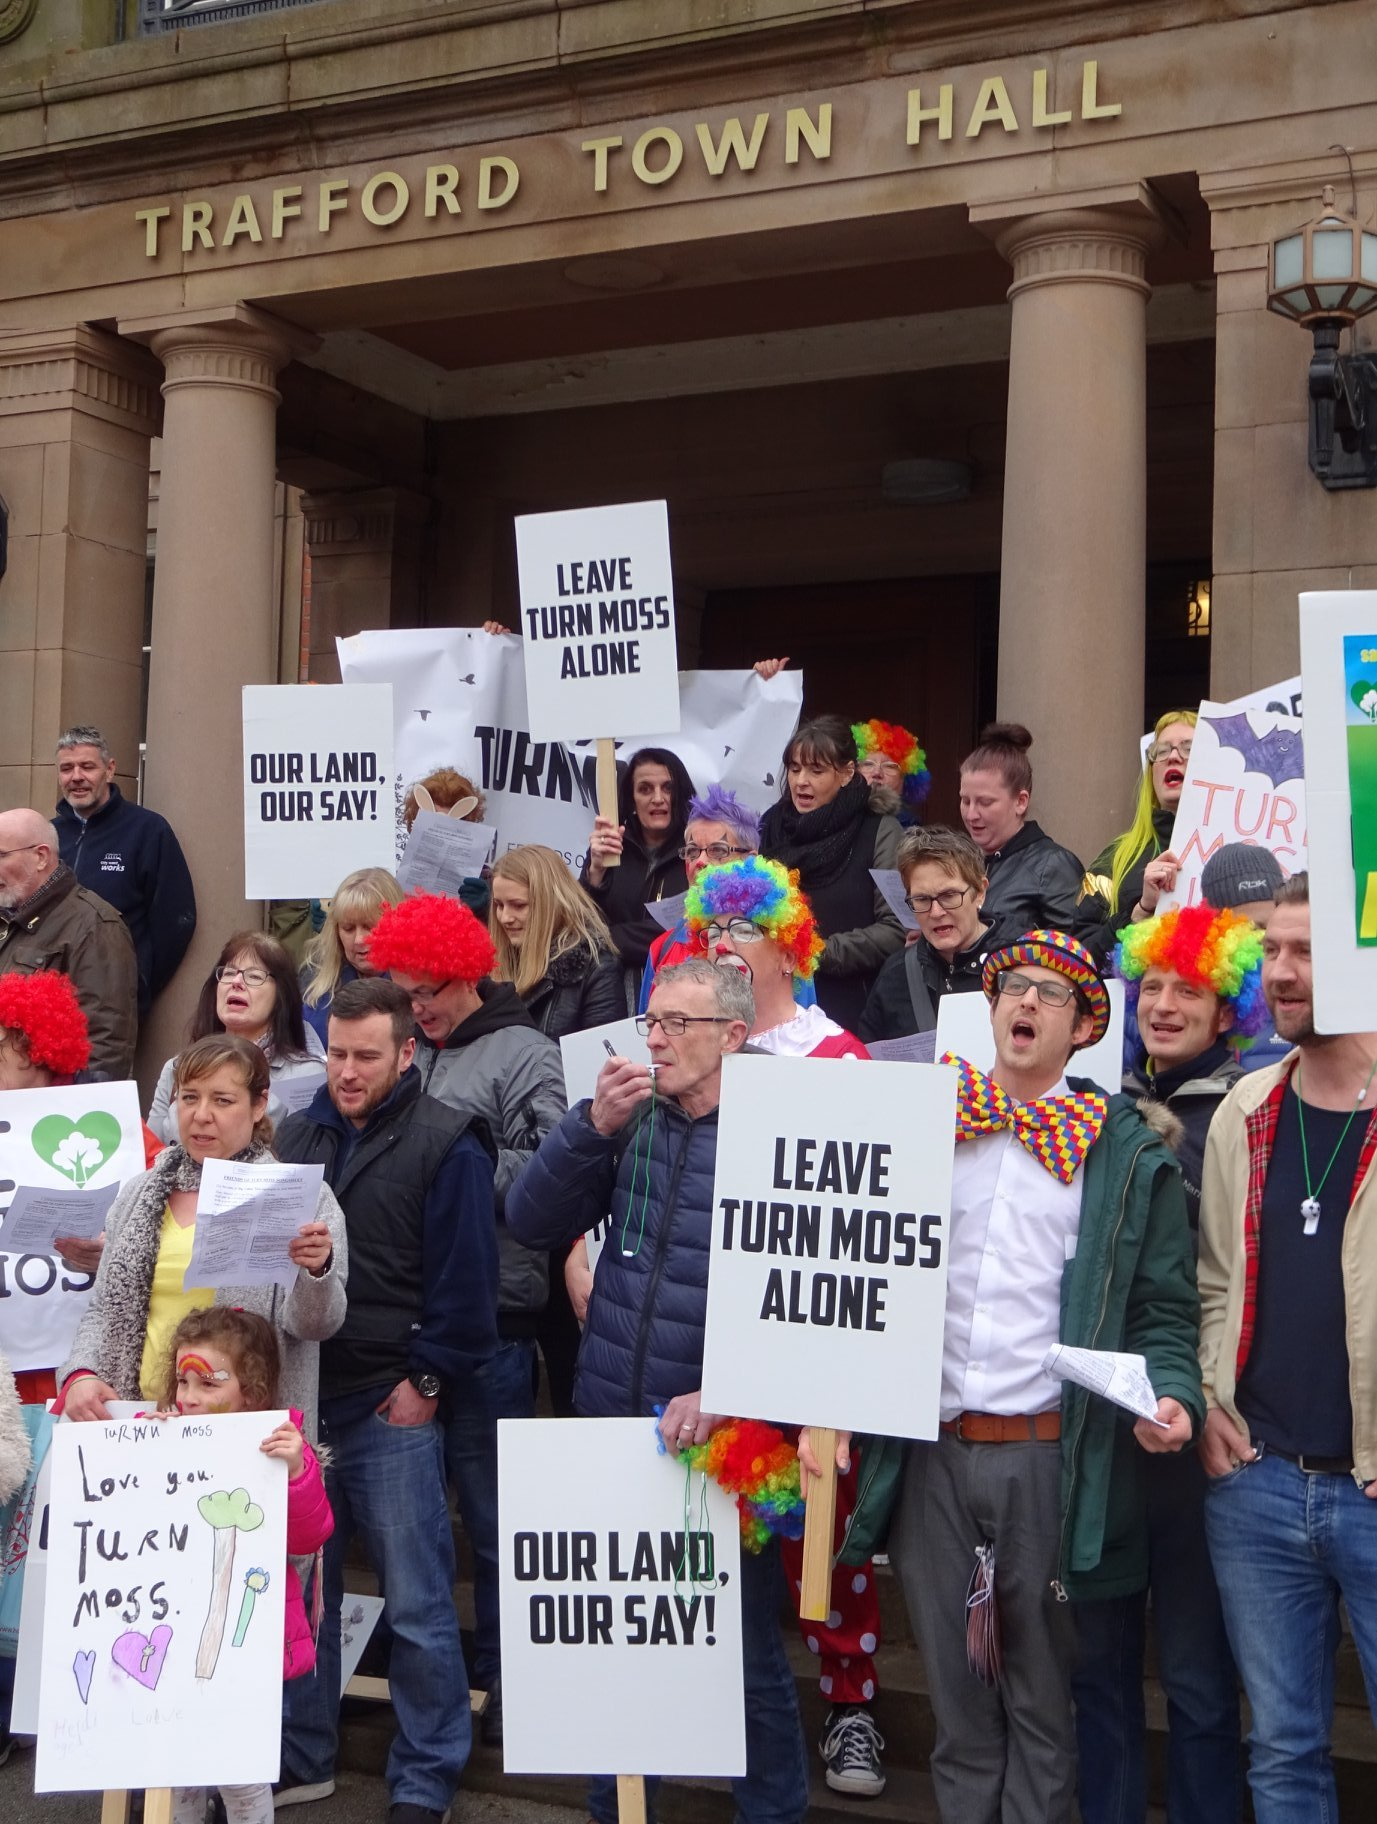 Friends of Turn Moss campaigners outside Trafford Town Hall. Picture: PaulHarnett